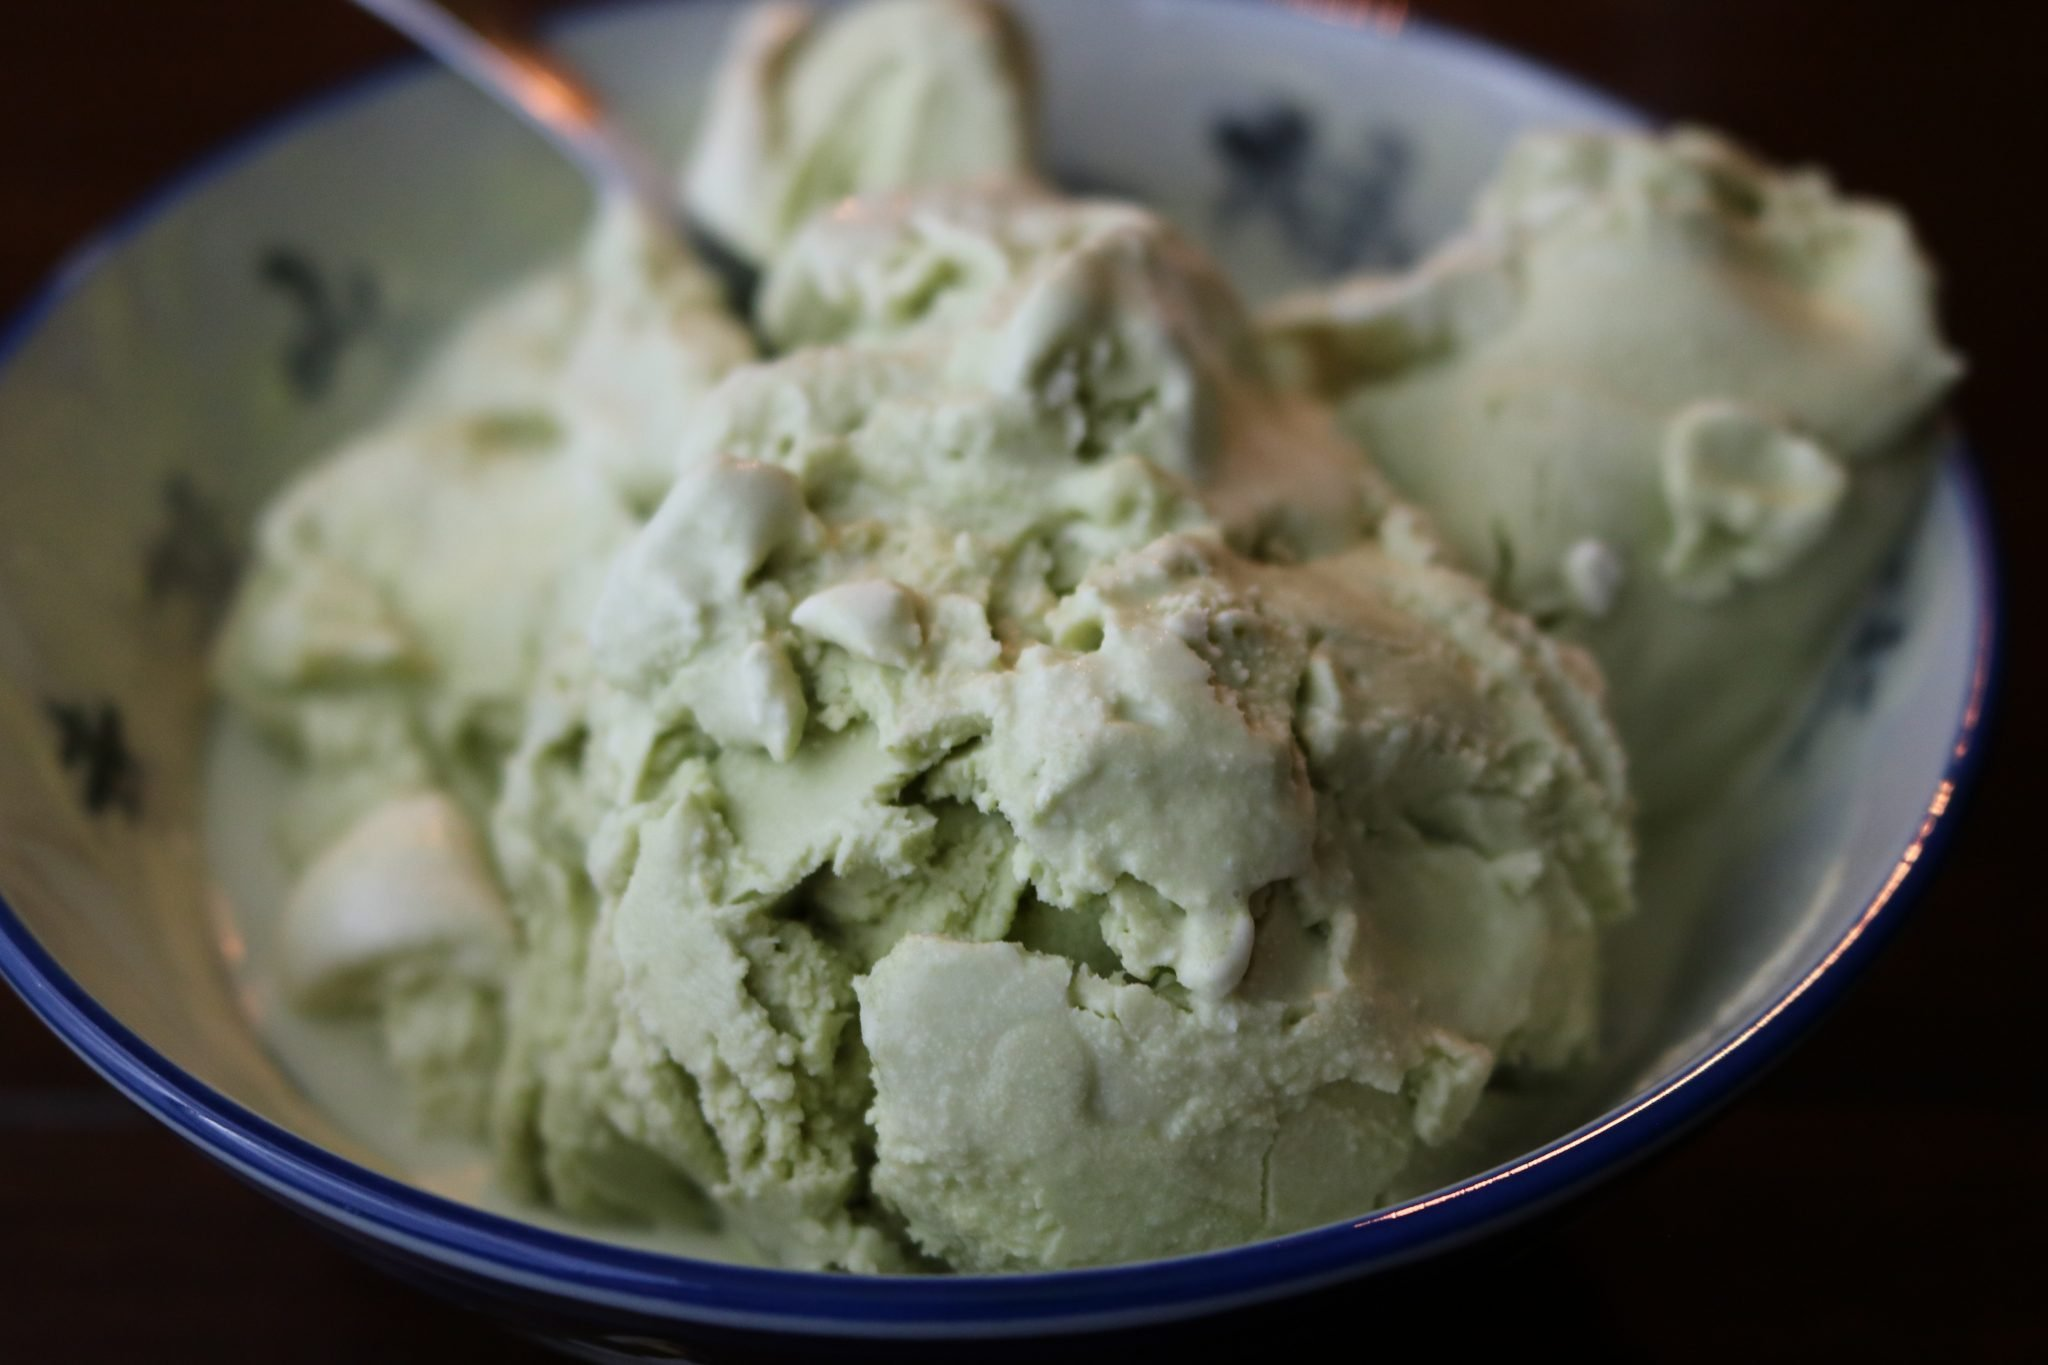 Matcha Ice Cream Recipe - refined sugar free. Plus a low carb option! 1